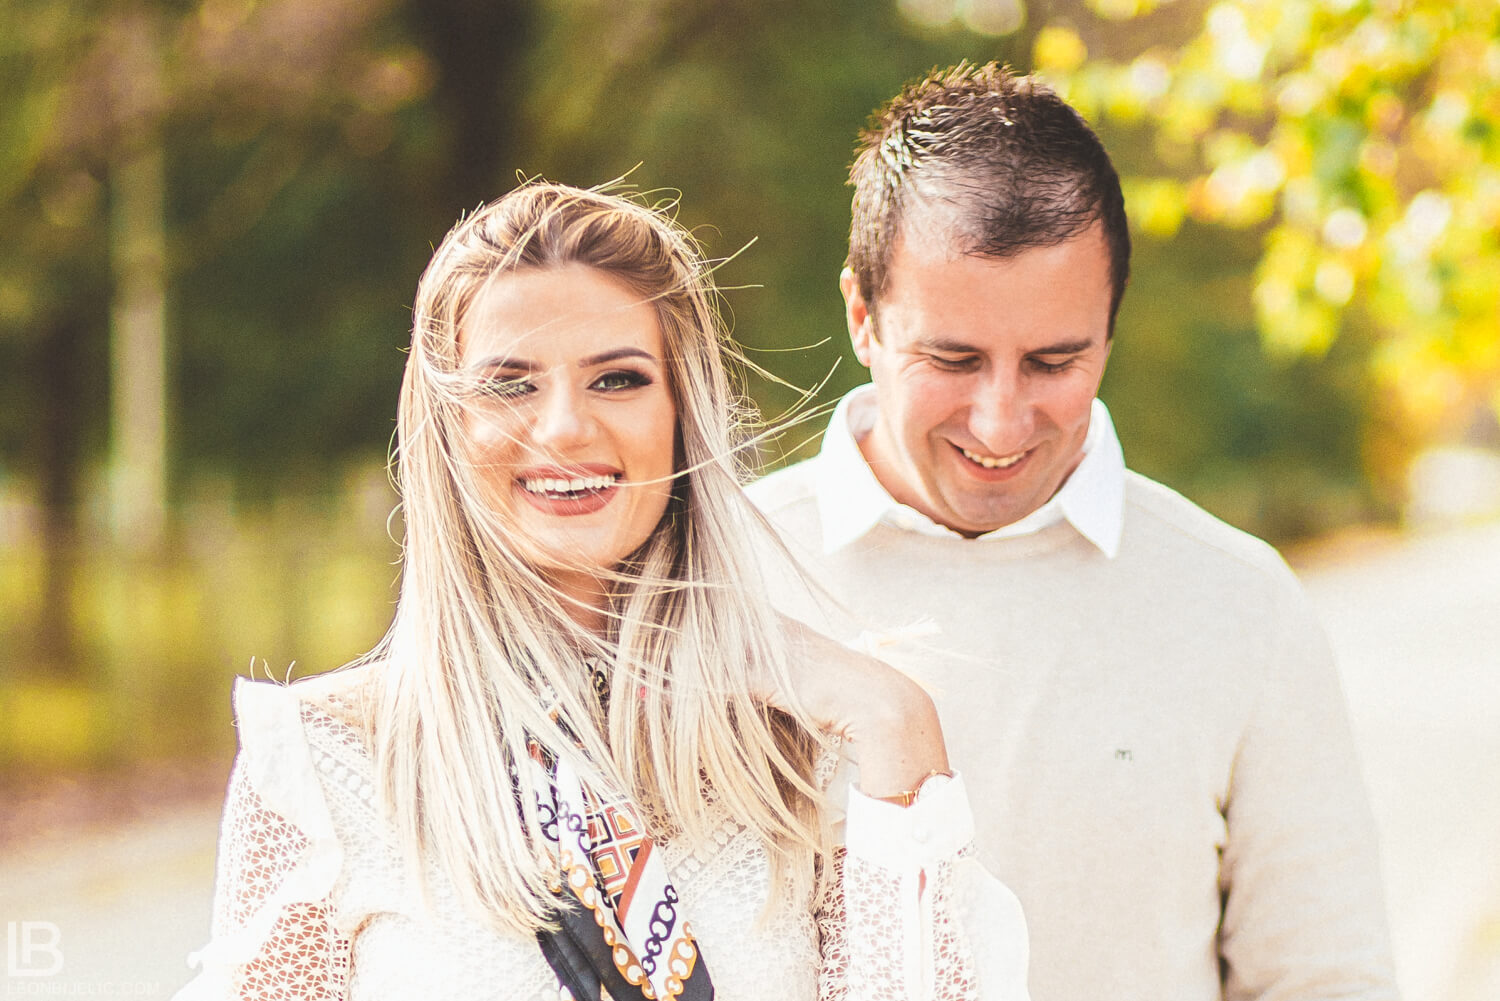 Family Love outdoor nature lovely couple photo session shooting outside natural light amazing great beautiful